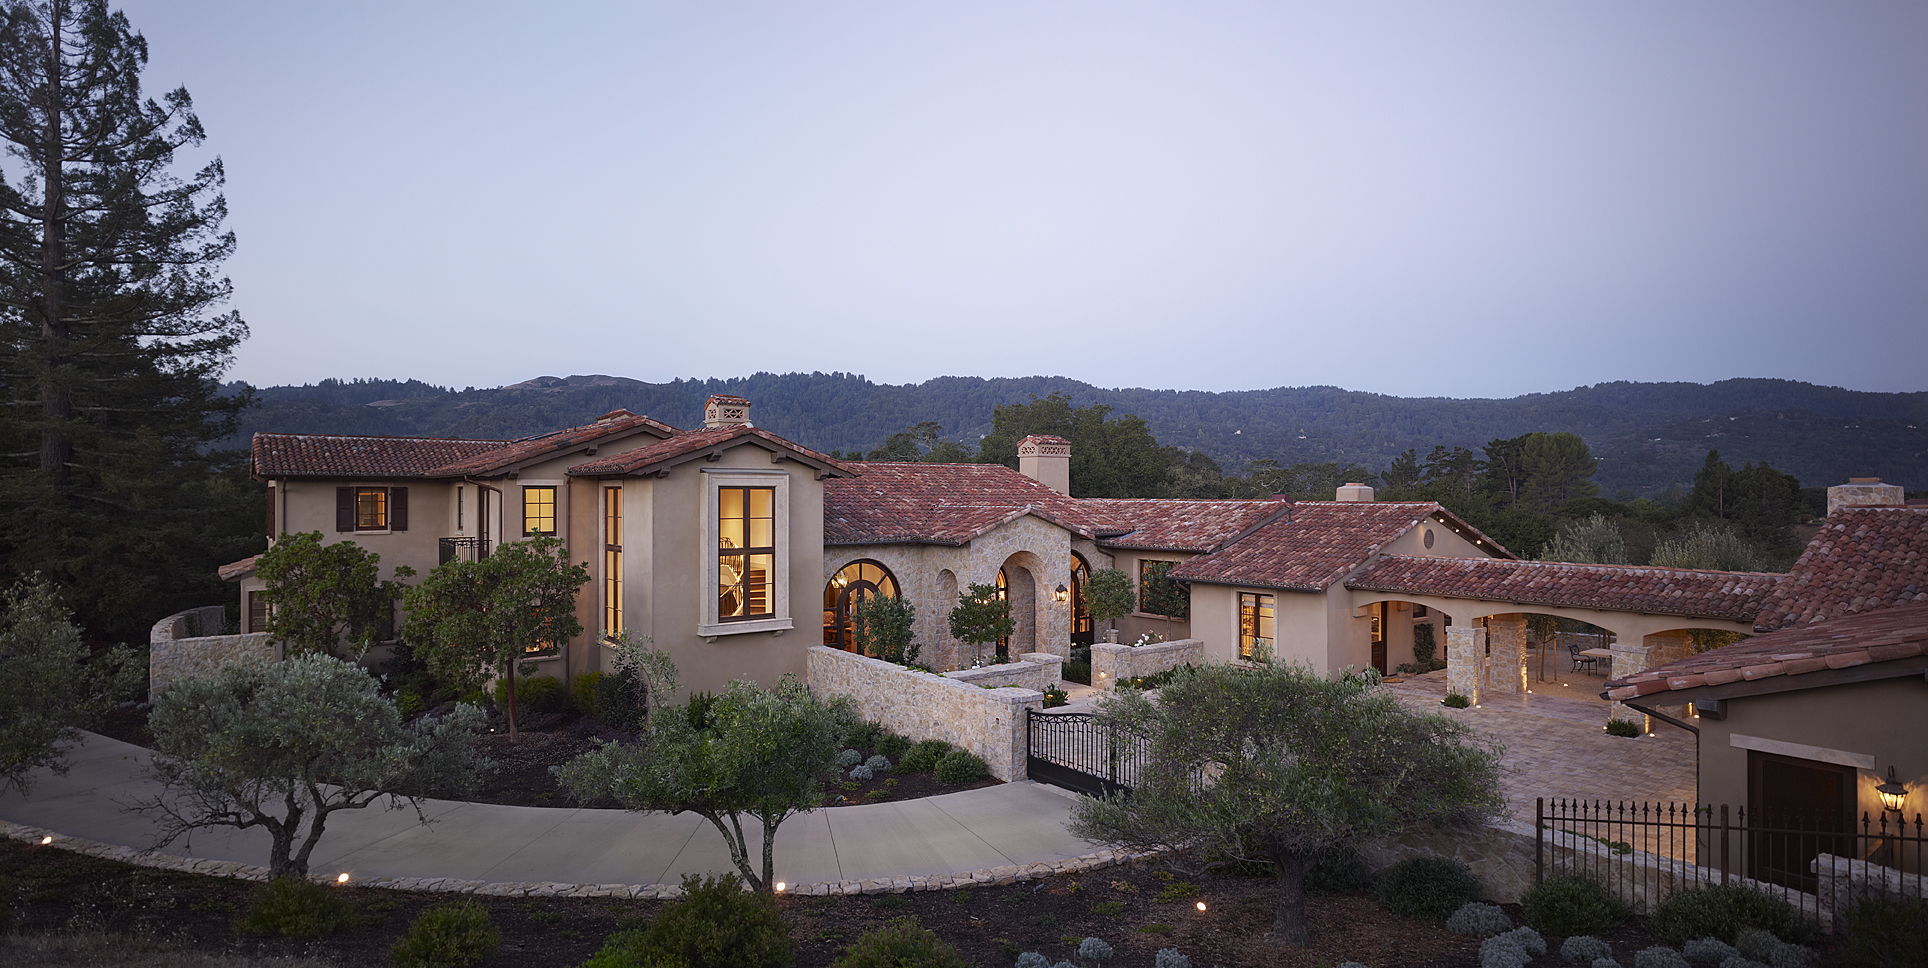 portola valley single personals Portola valley is a great combination of seclusion,  portola valley, california 94028 , united statesis a single family home with 5 bedrooms, 5 full baths, .